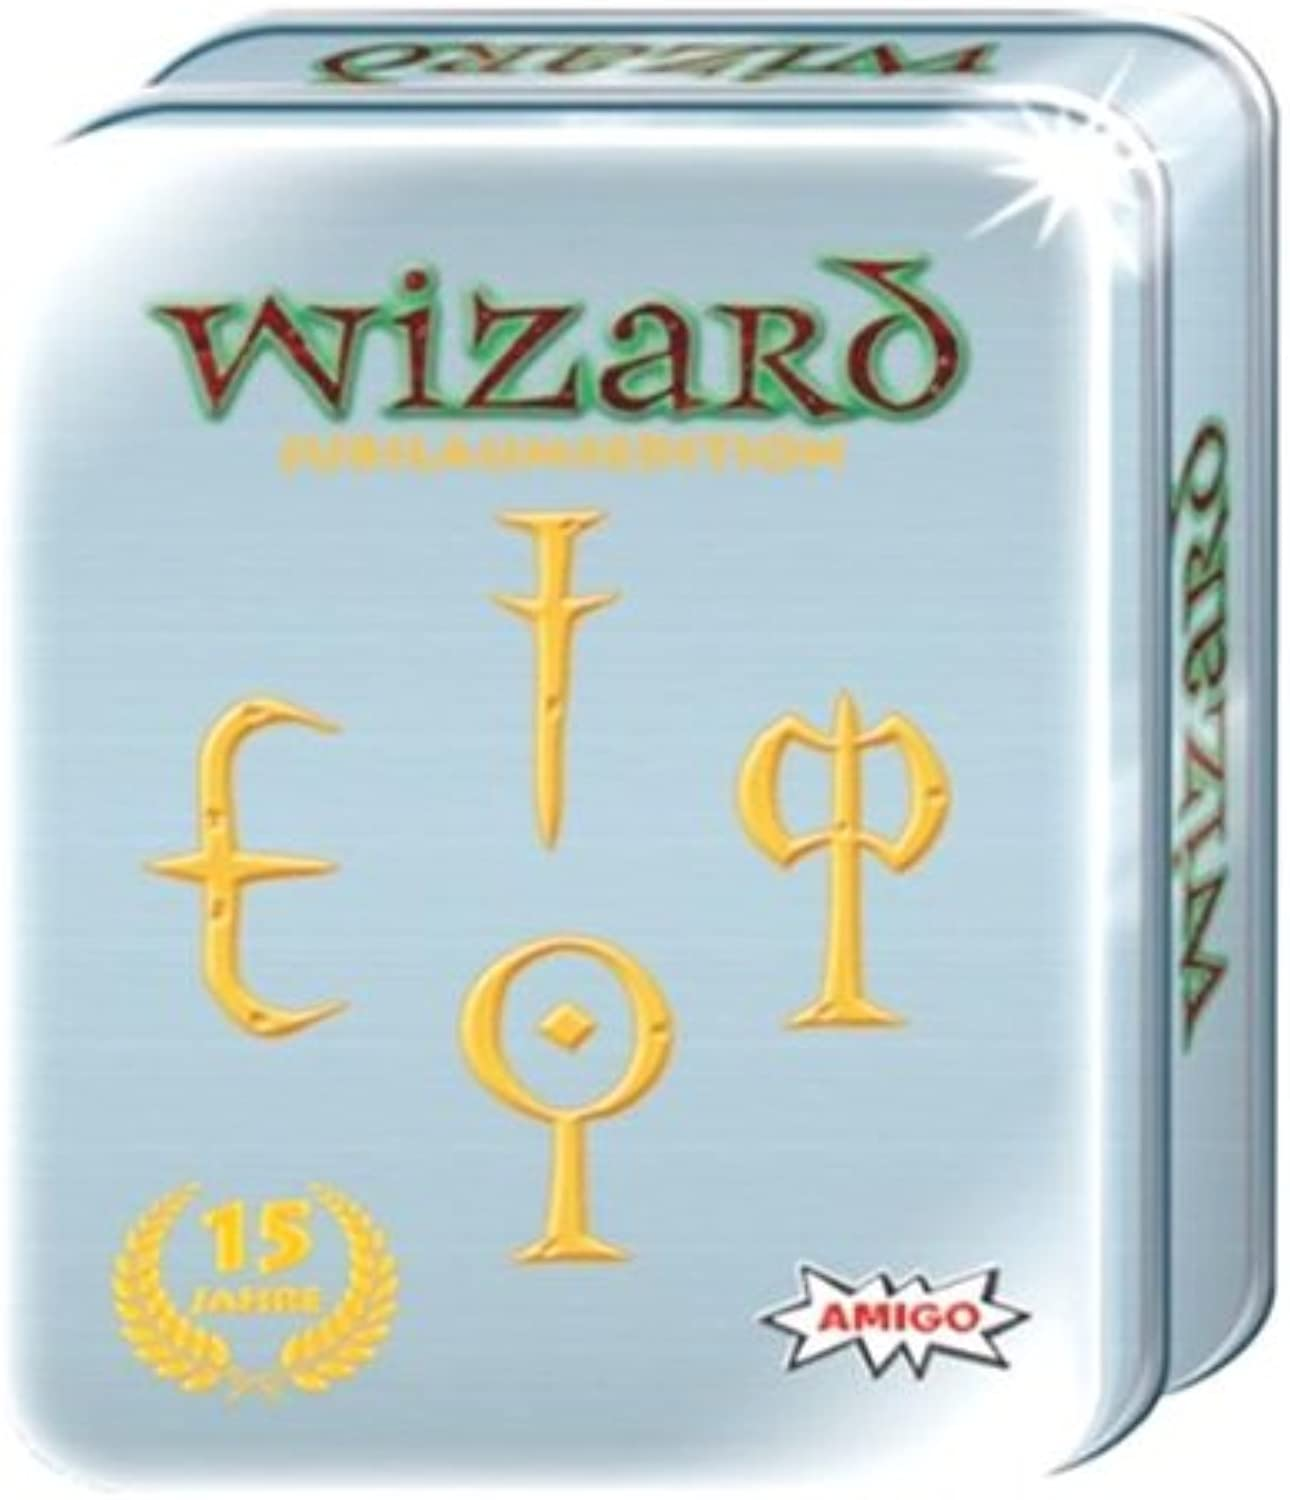 Amigo Spiele 1770 - Wizard Jubilumsedition (Metalldose)